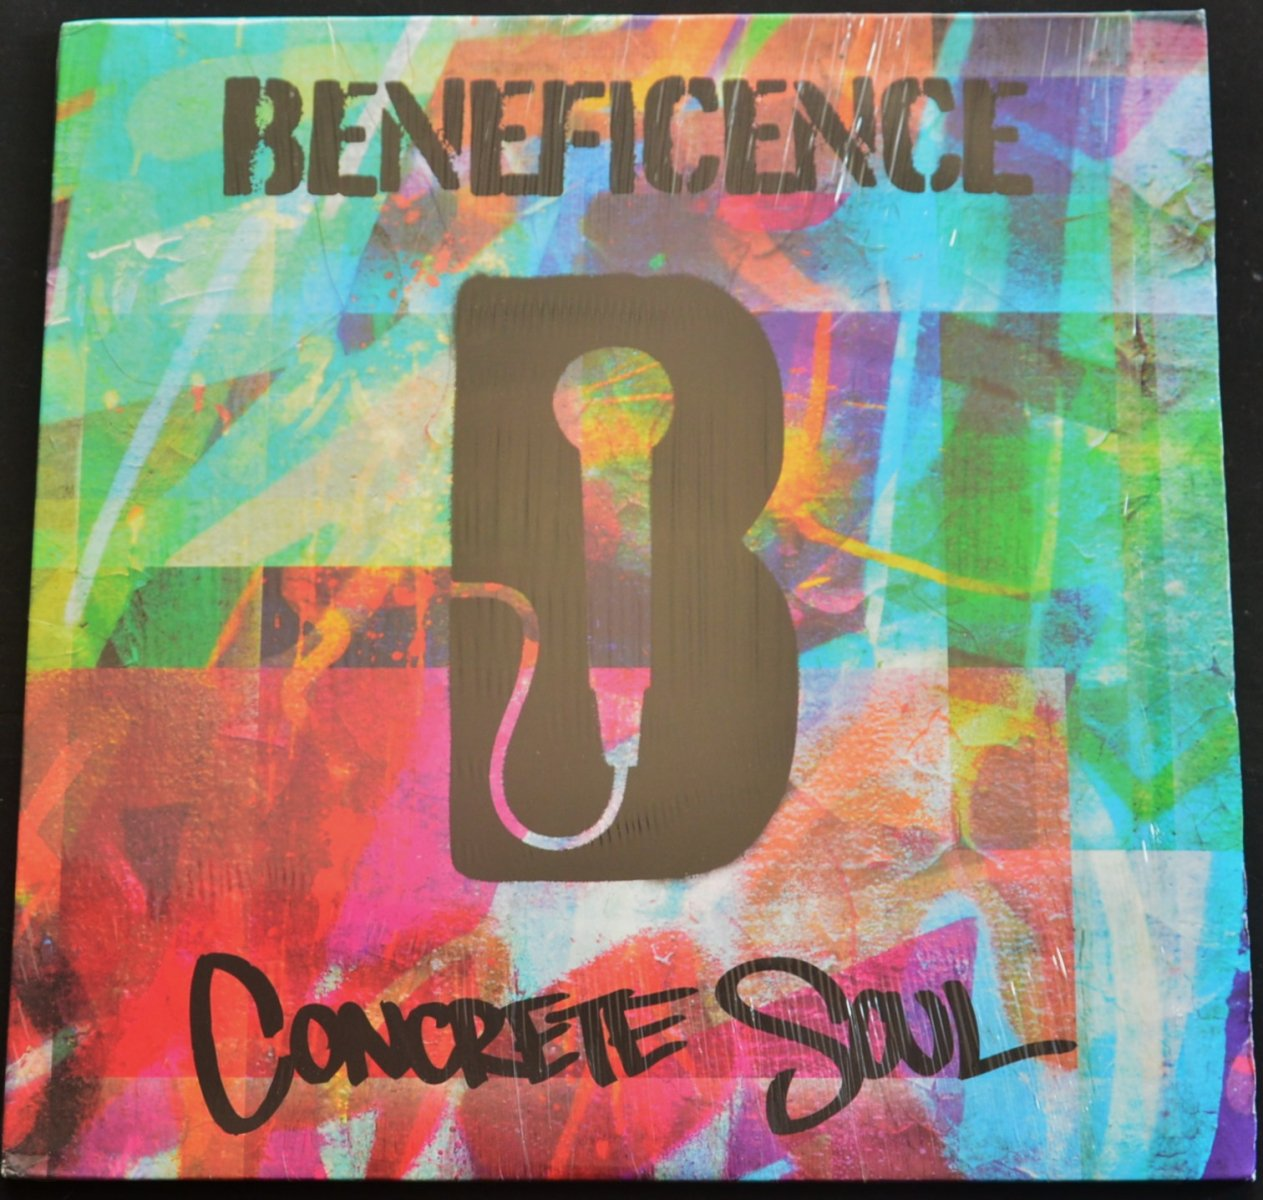 BENEFICENCE / CONCRETE SOUL (2LP)